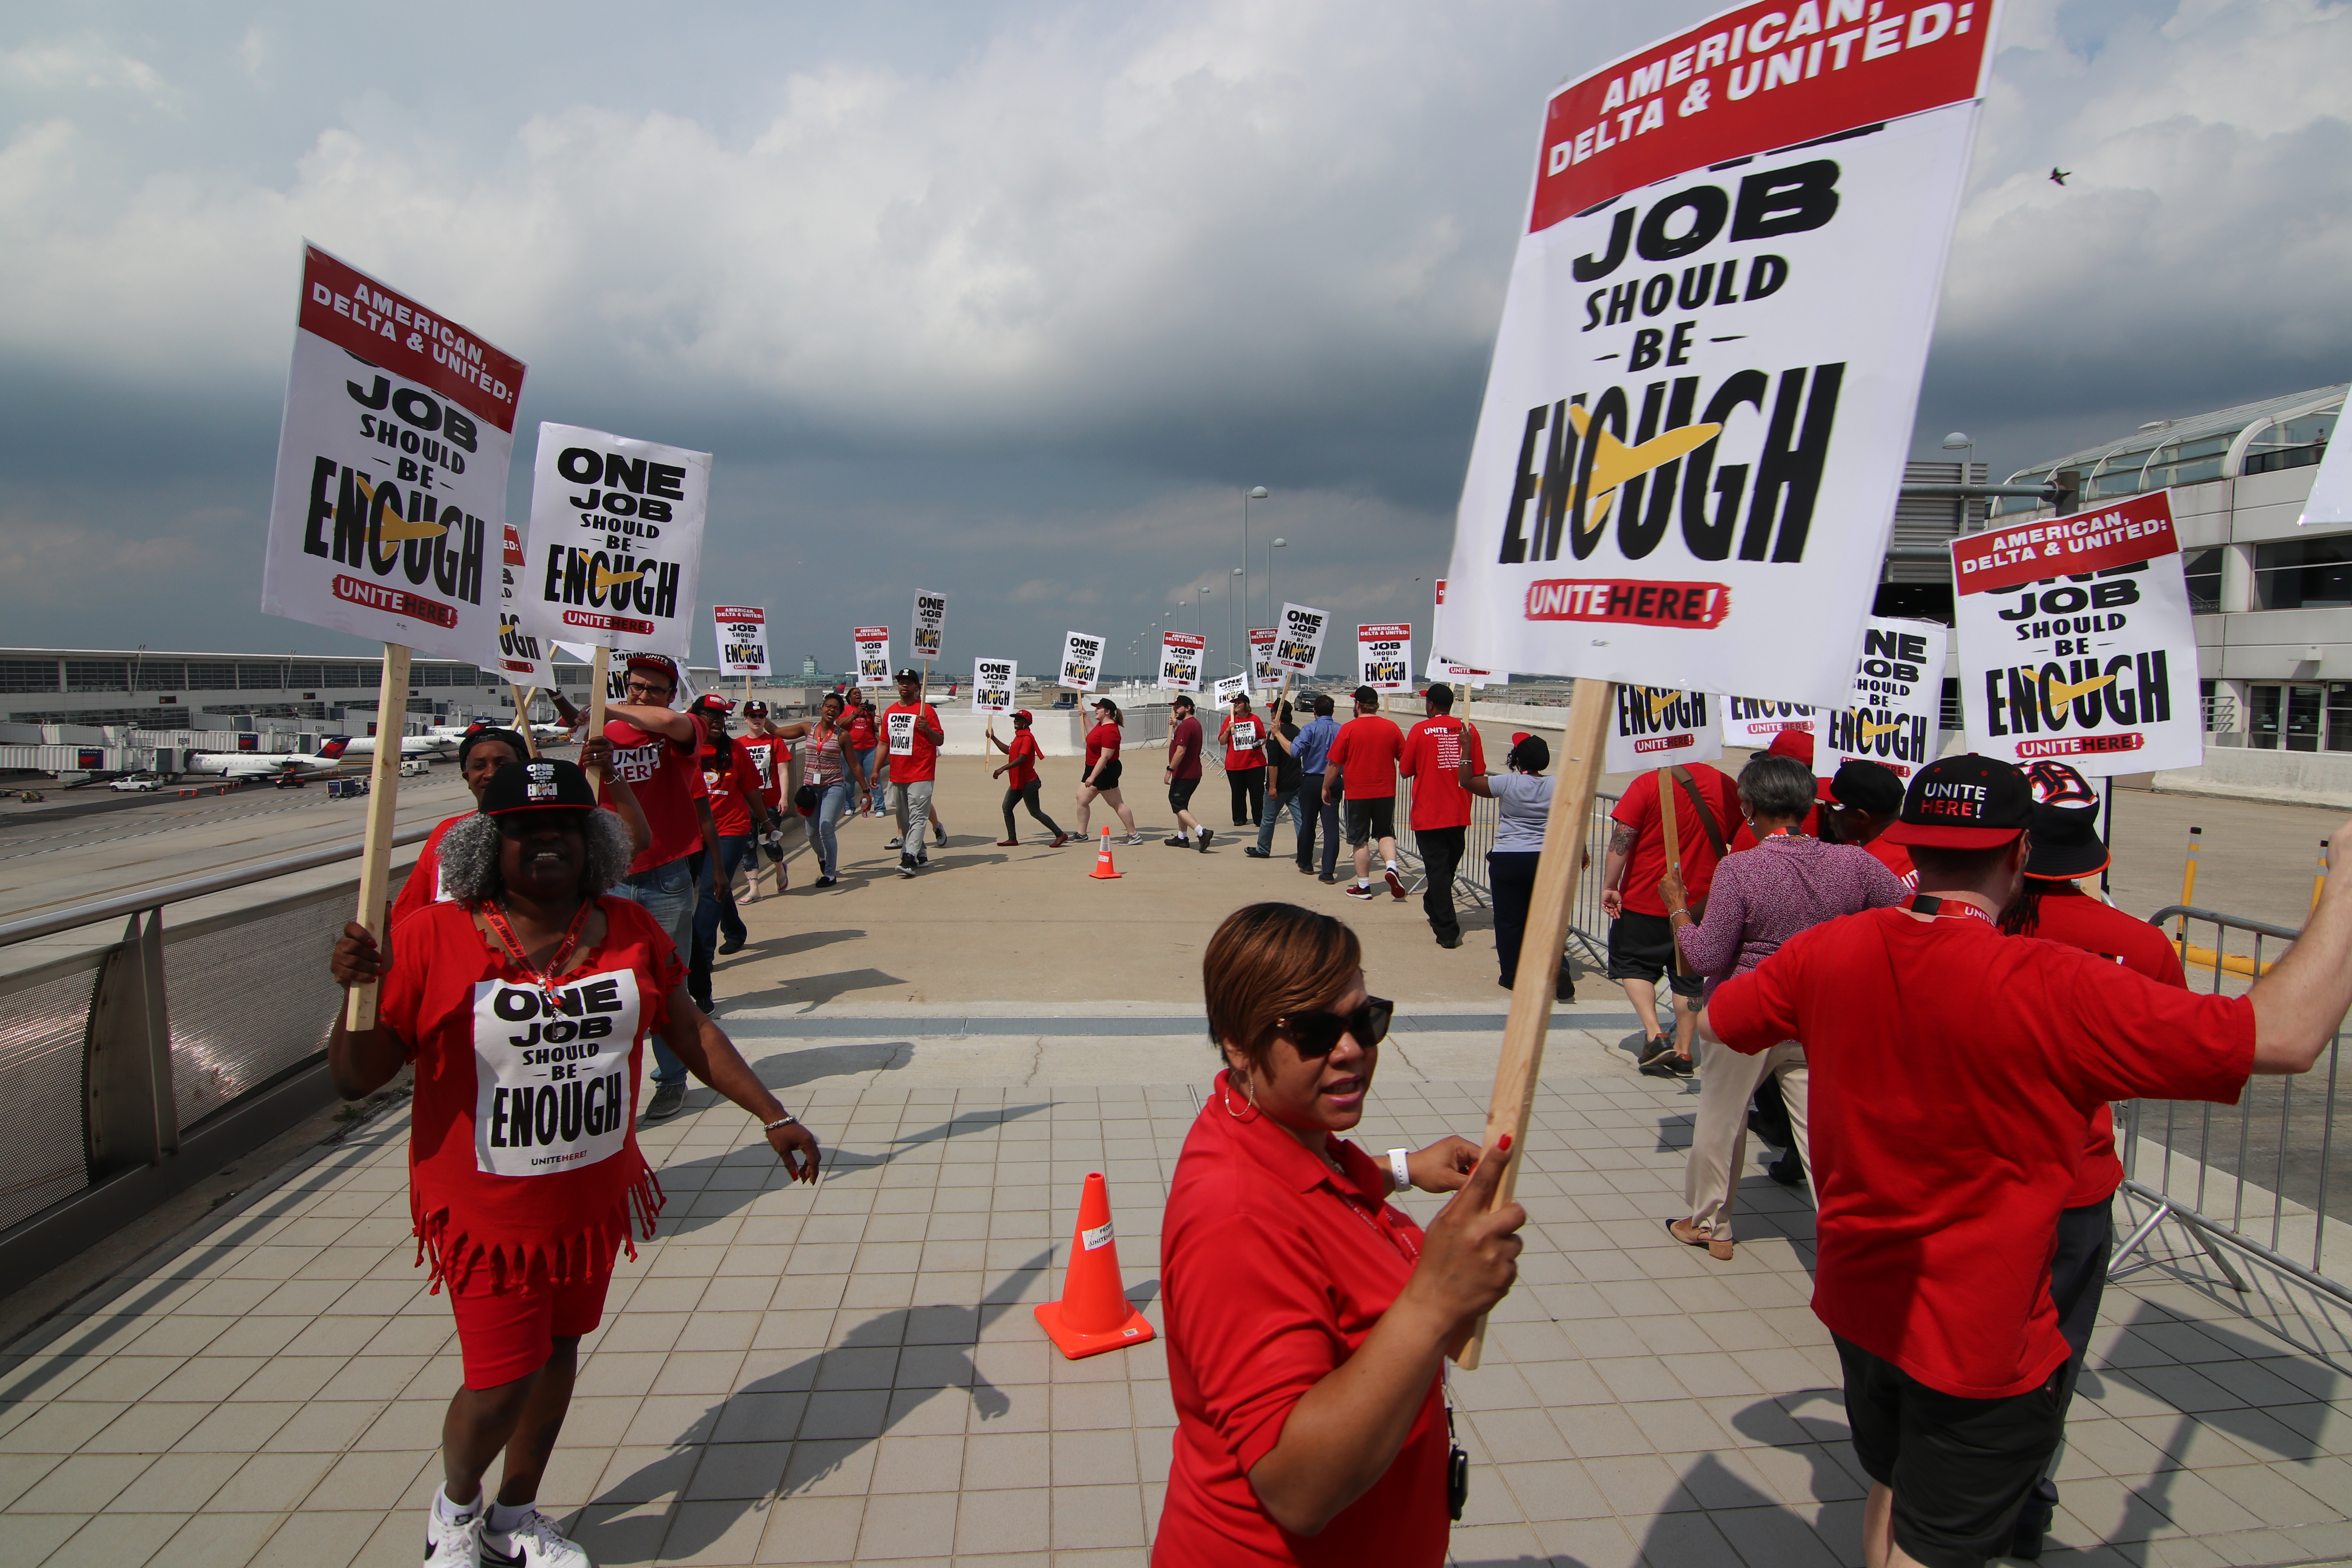 Airline catering workers in red shirts carry signs outside of DTW Airport in July.